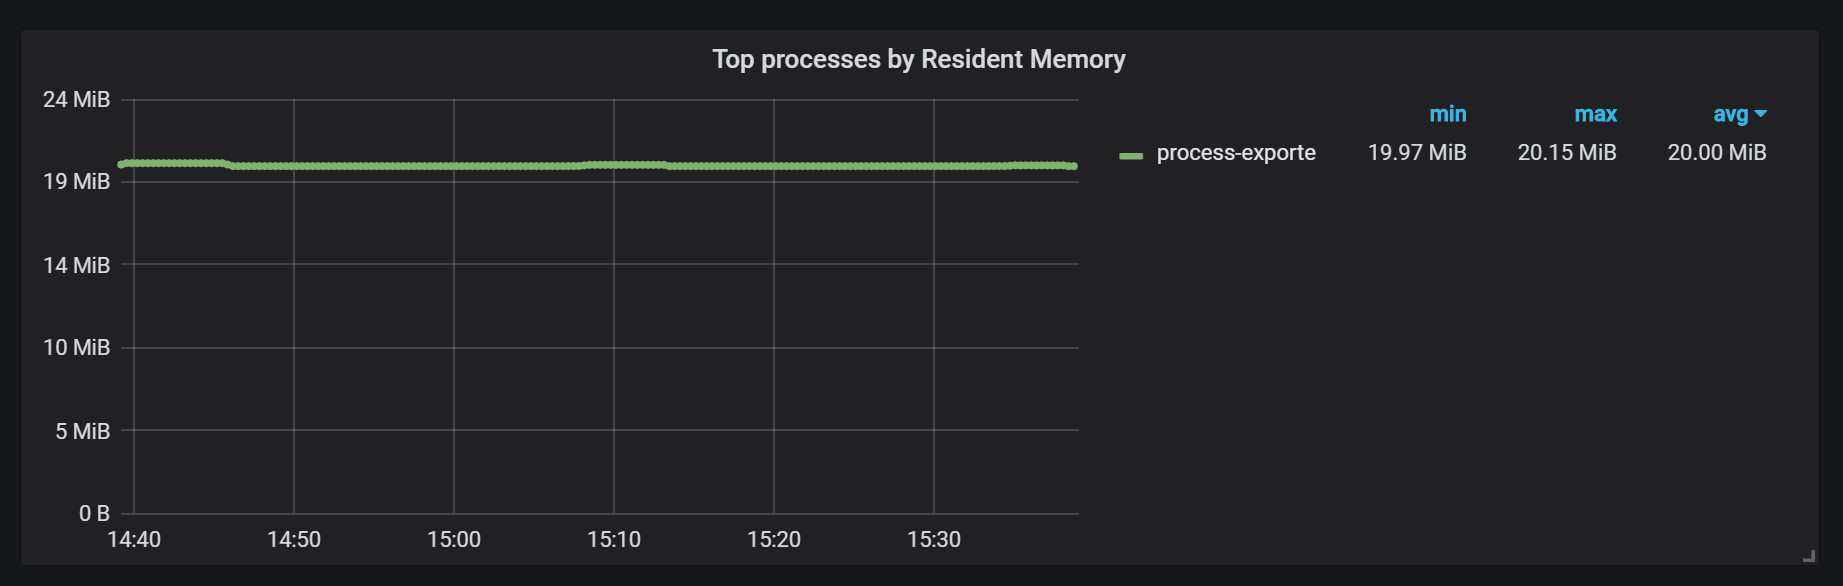 top processes by resident memory